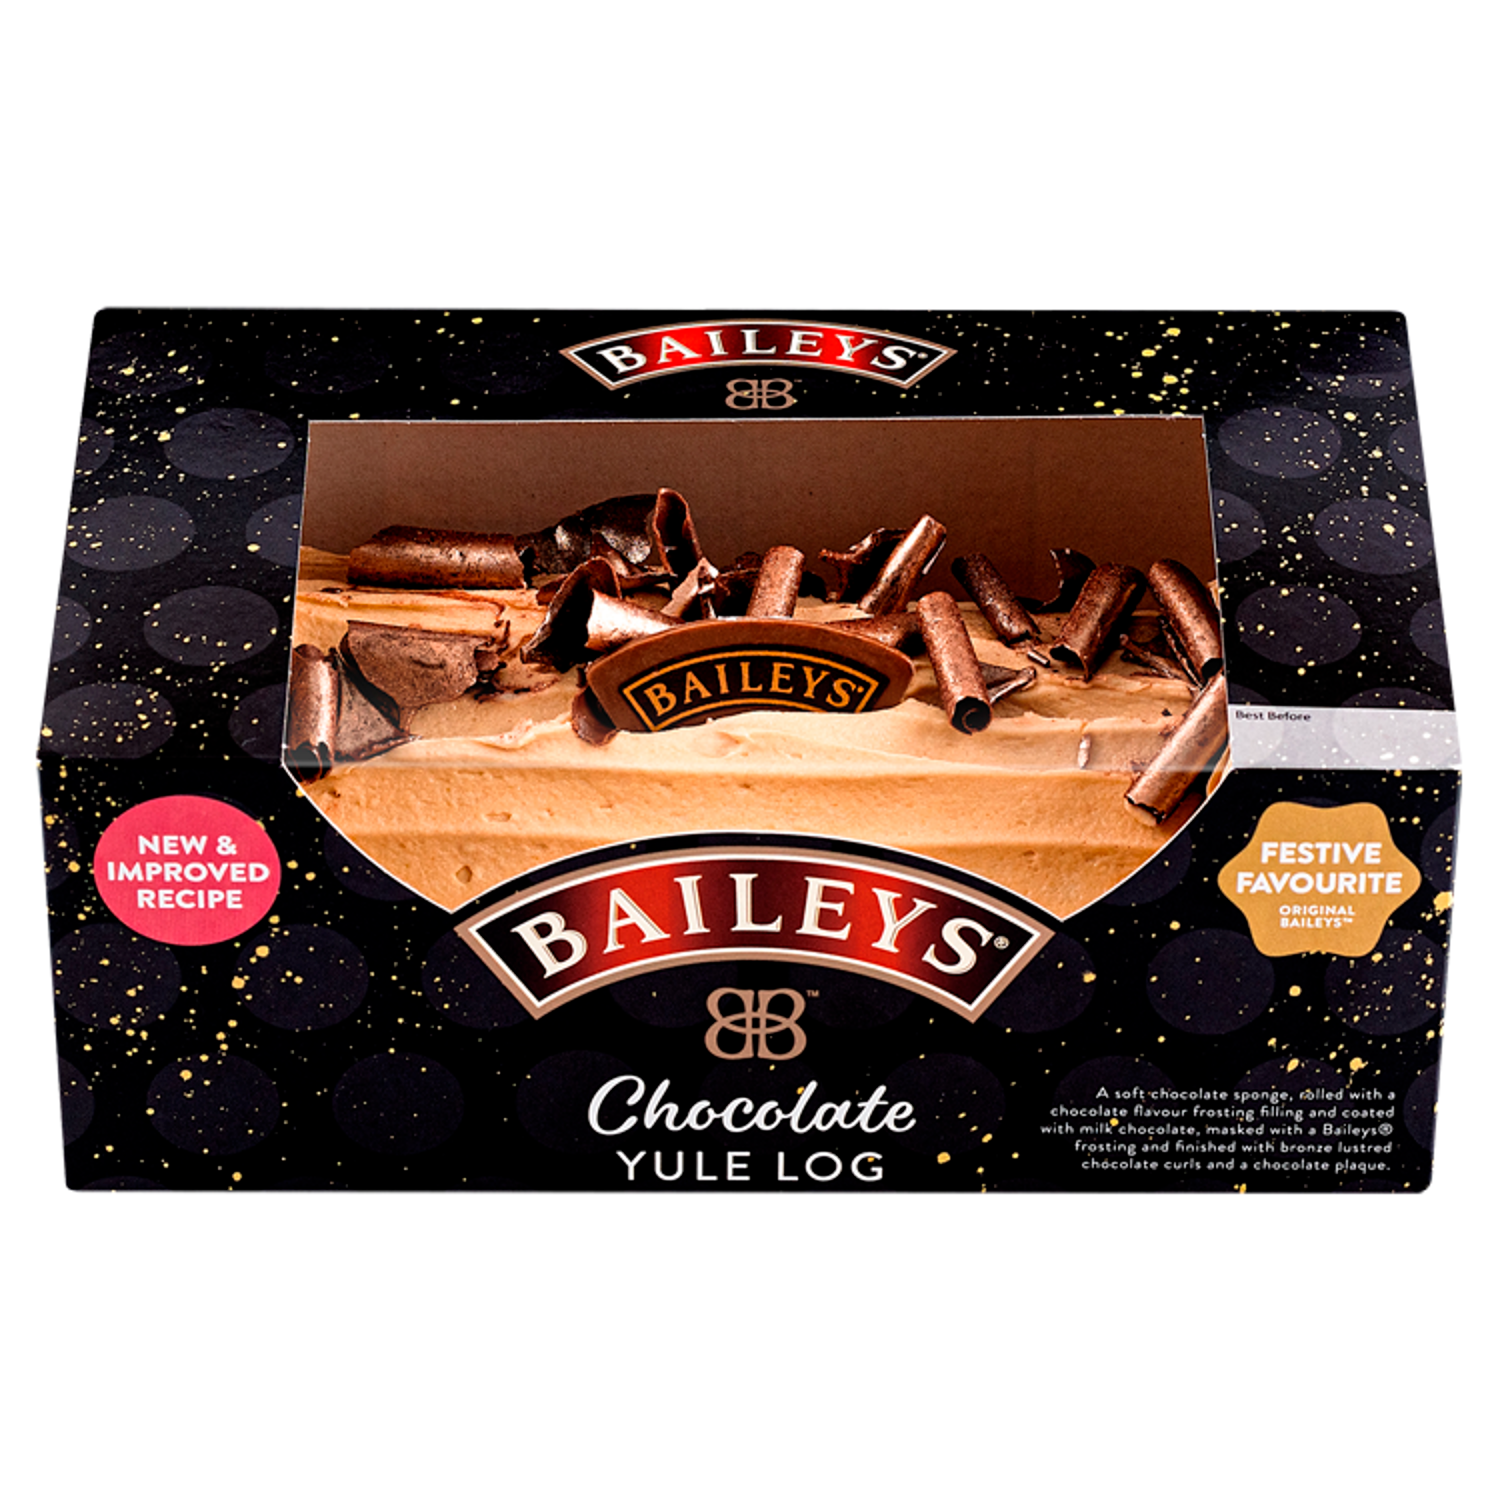 This Bailey's Chocolate Yule Log Is ALL We Want For Christmas Dessert